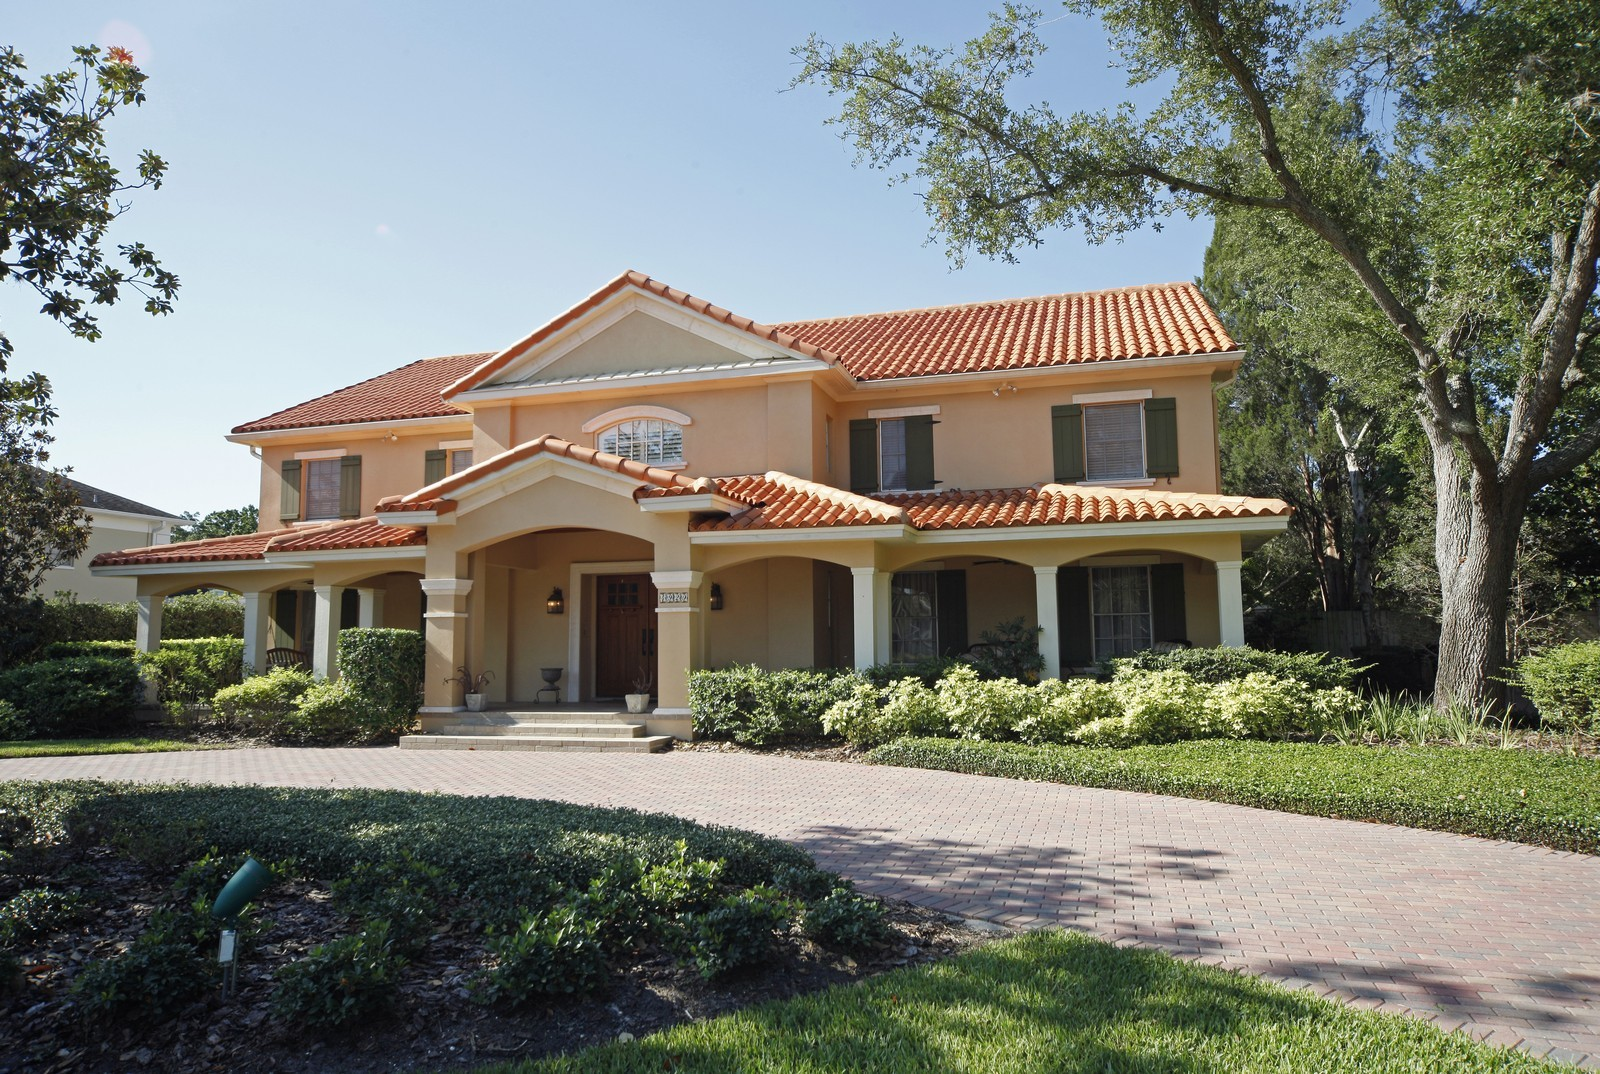 Real Estate Photography - 4920 Lyford Cay Road, Tampa, FL, 33629 - Front View